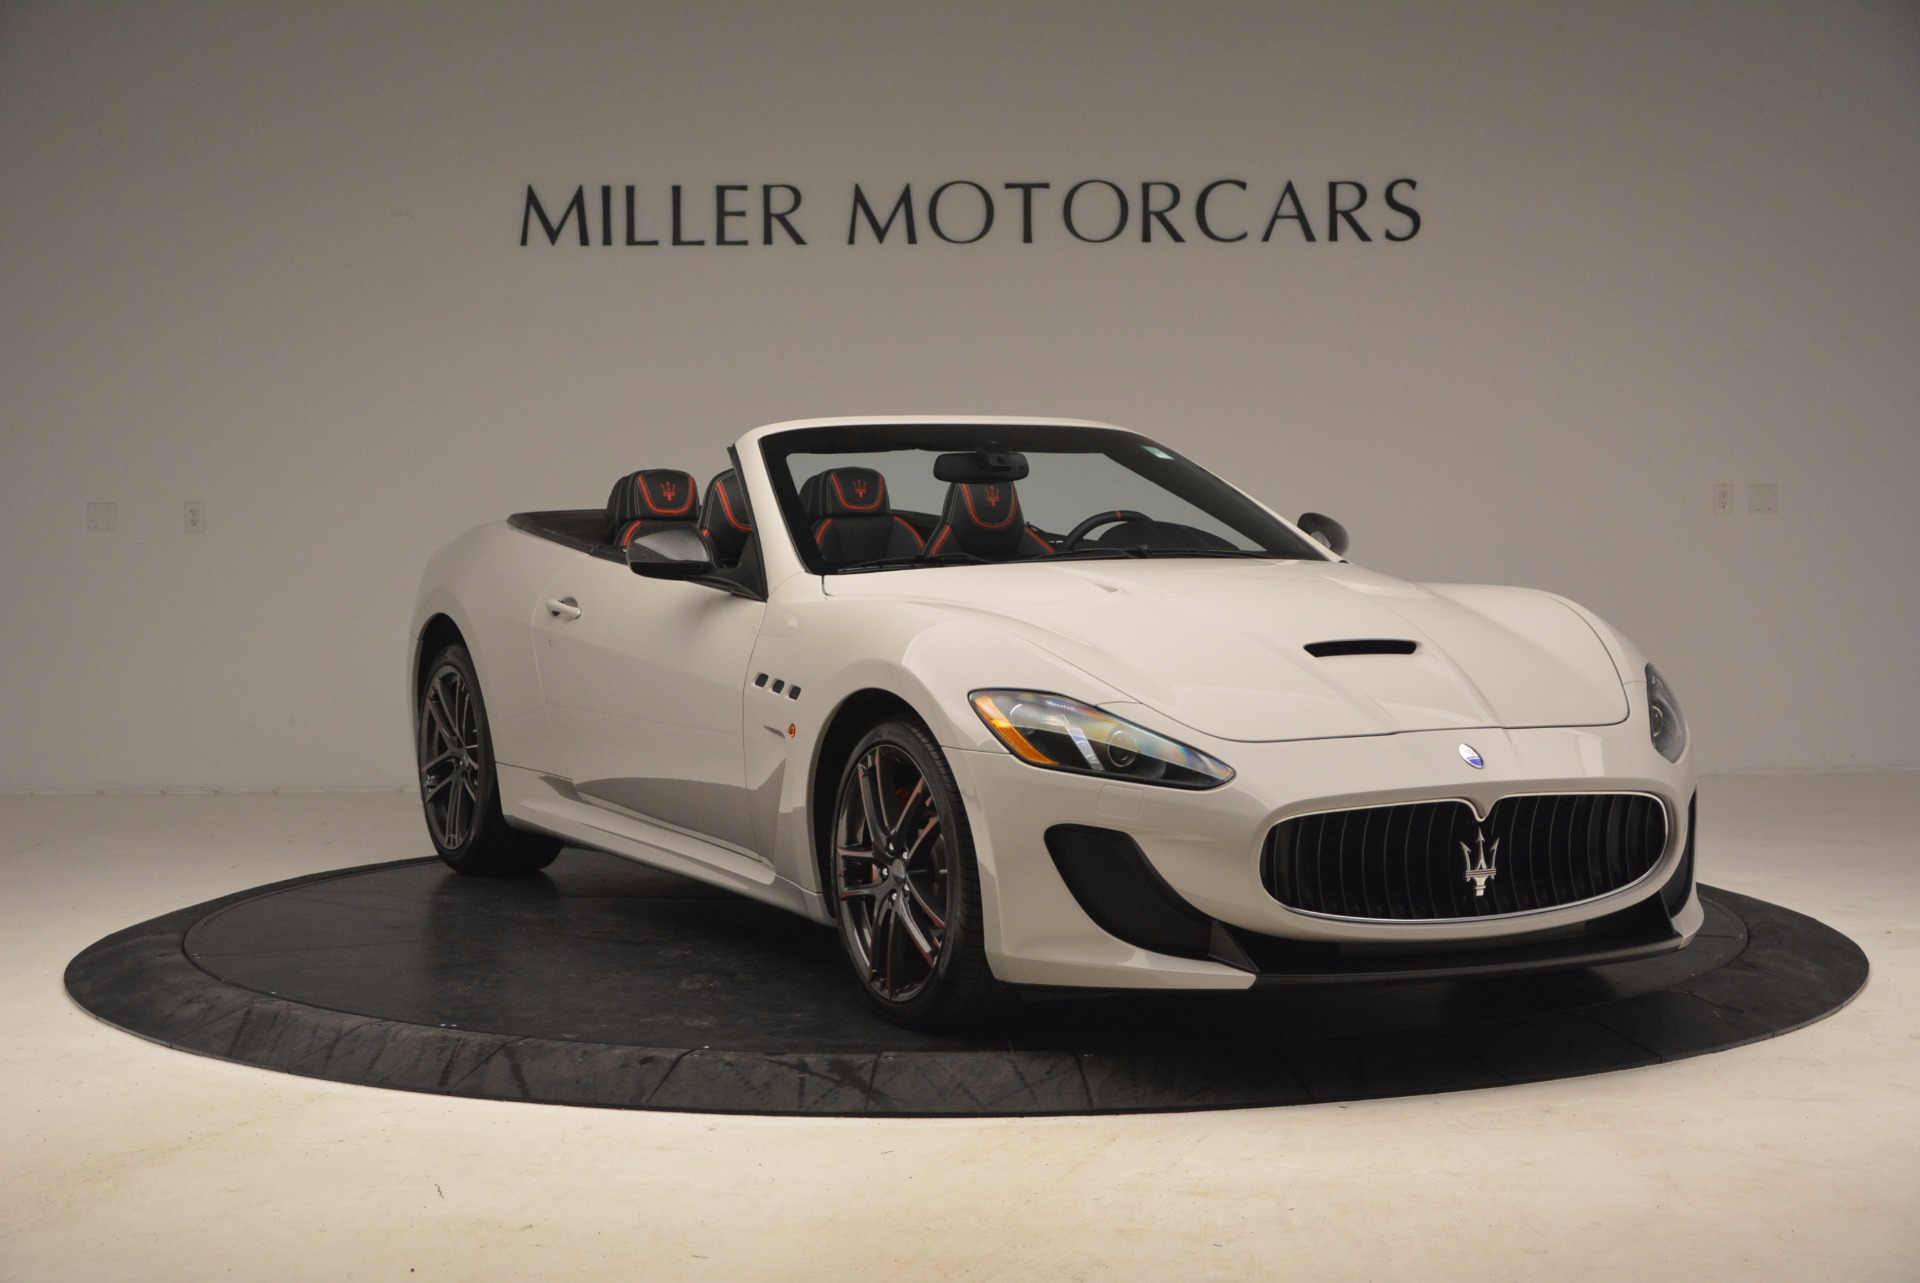 Used 2015 Maserati GranTurismo MC Centennial For Sale In Westport, CT 1107_p11